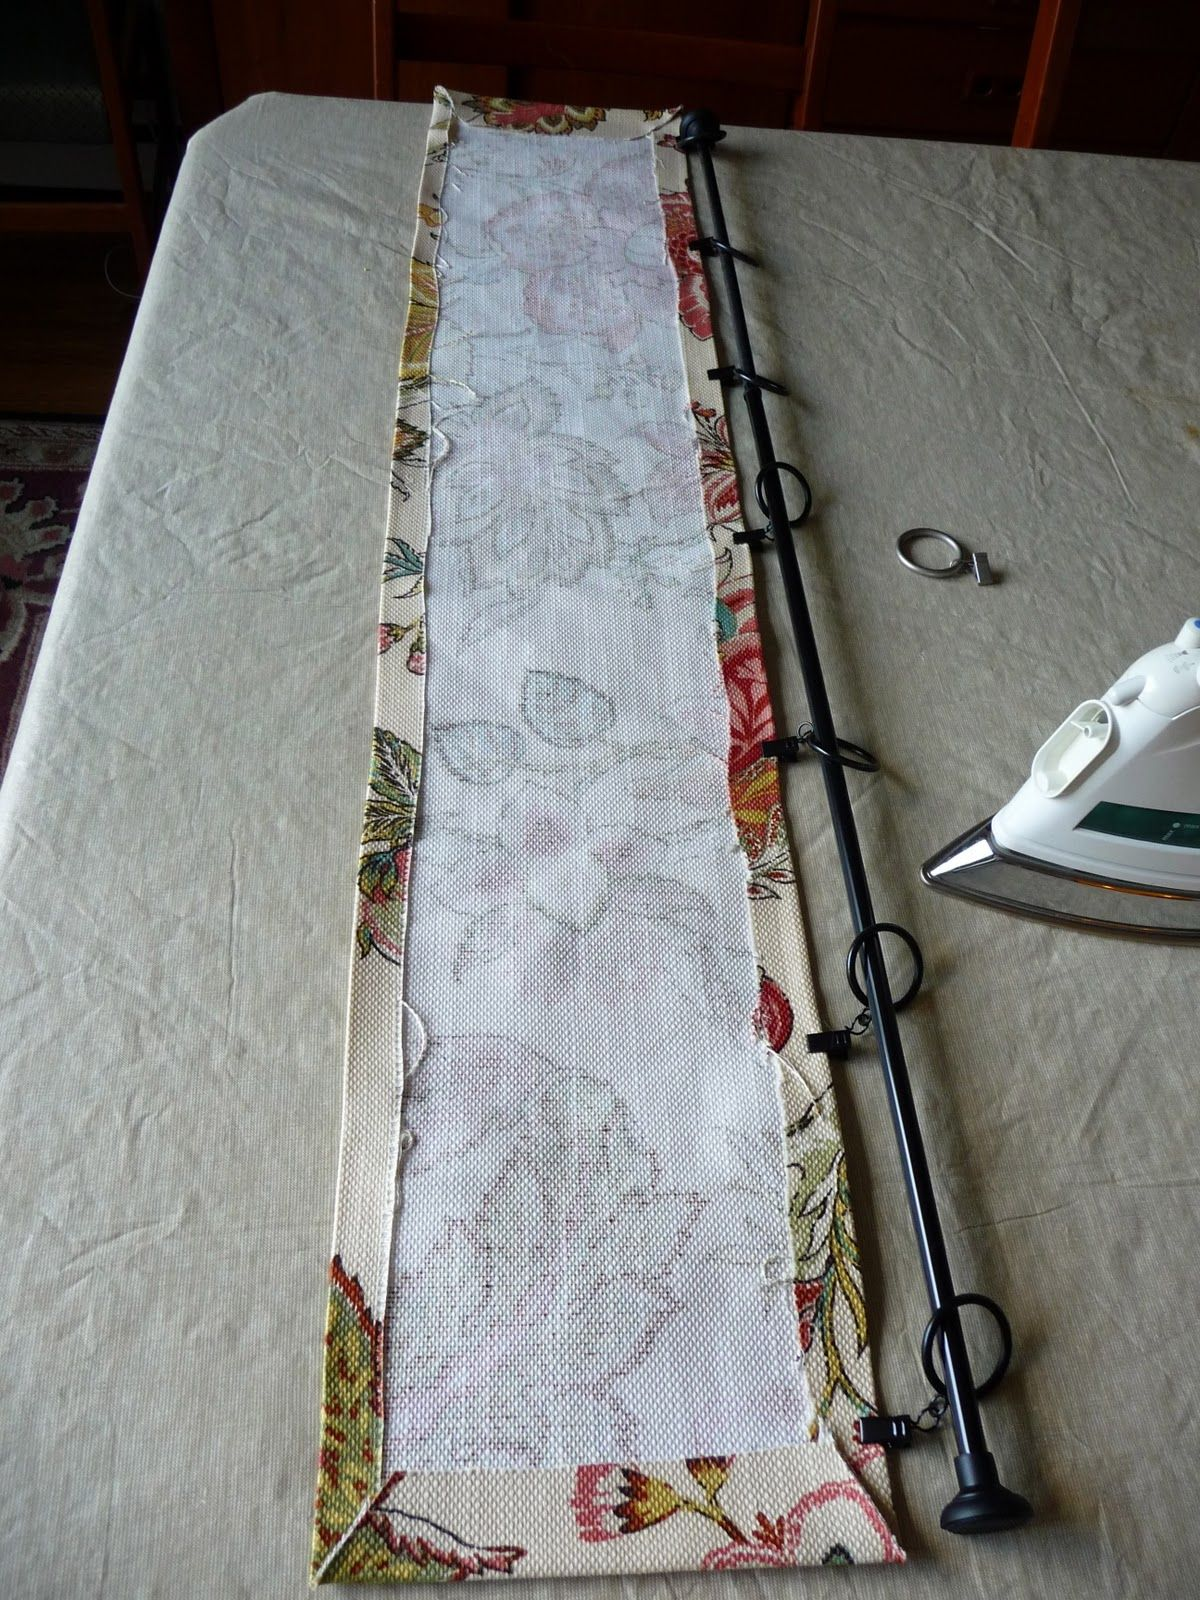 No-sew hanging valance tutorial | Valance tutorial, Valance and ...